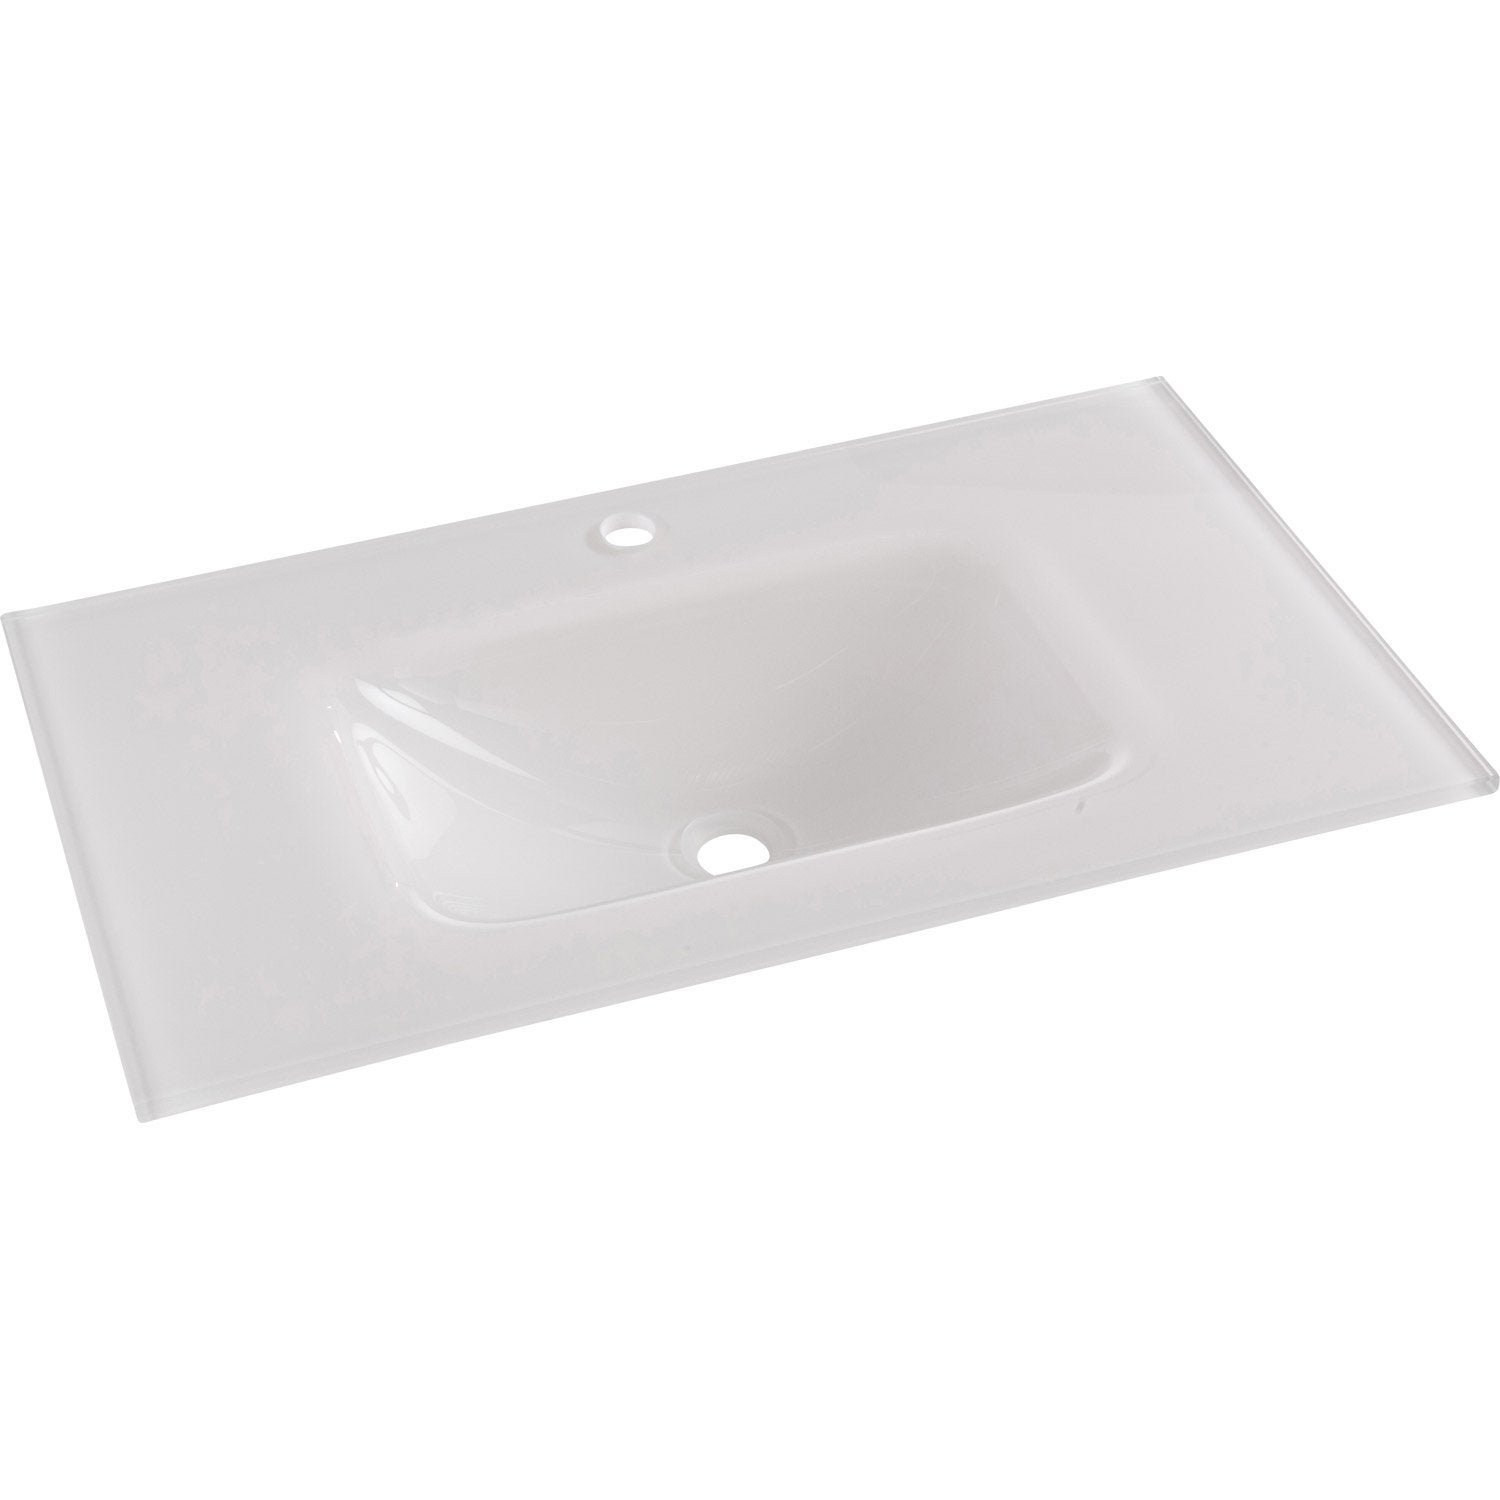 plan vasque simple opale verre tremp 81 cm leroy merlin - Vasque Salle De Bain Verre Trempe